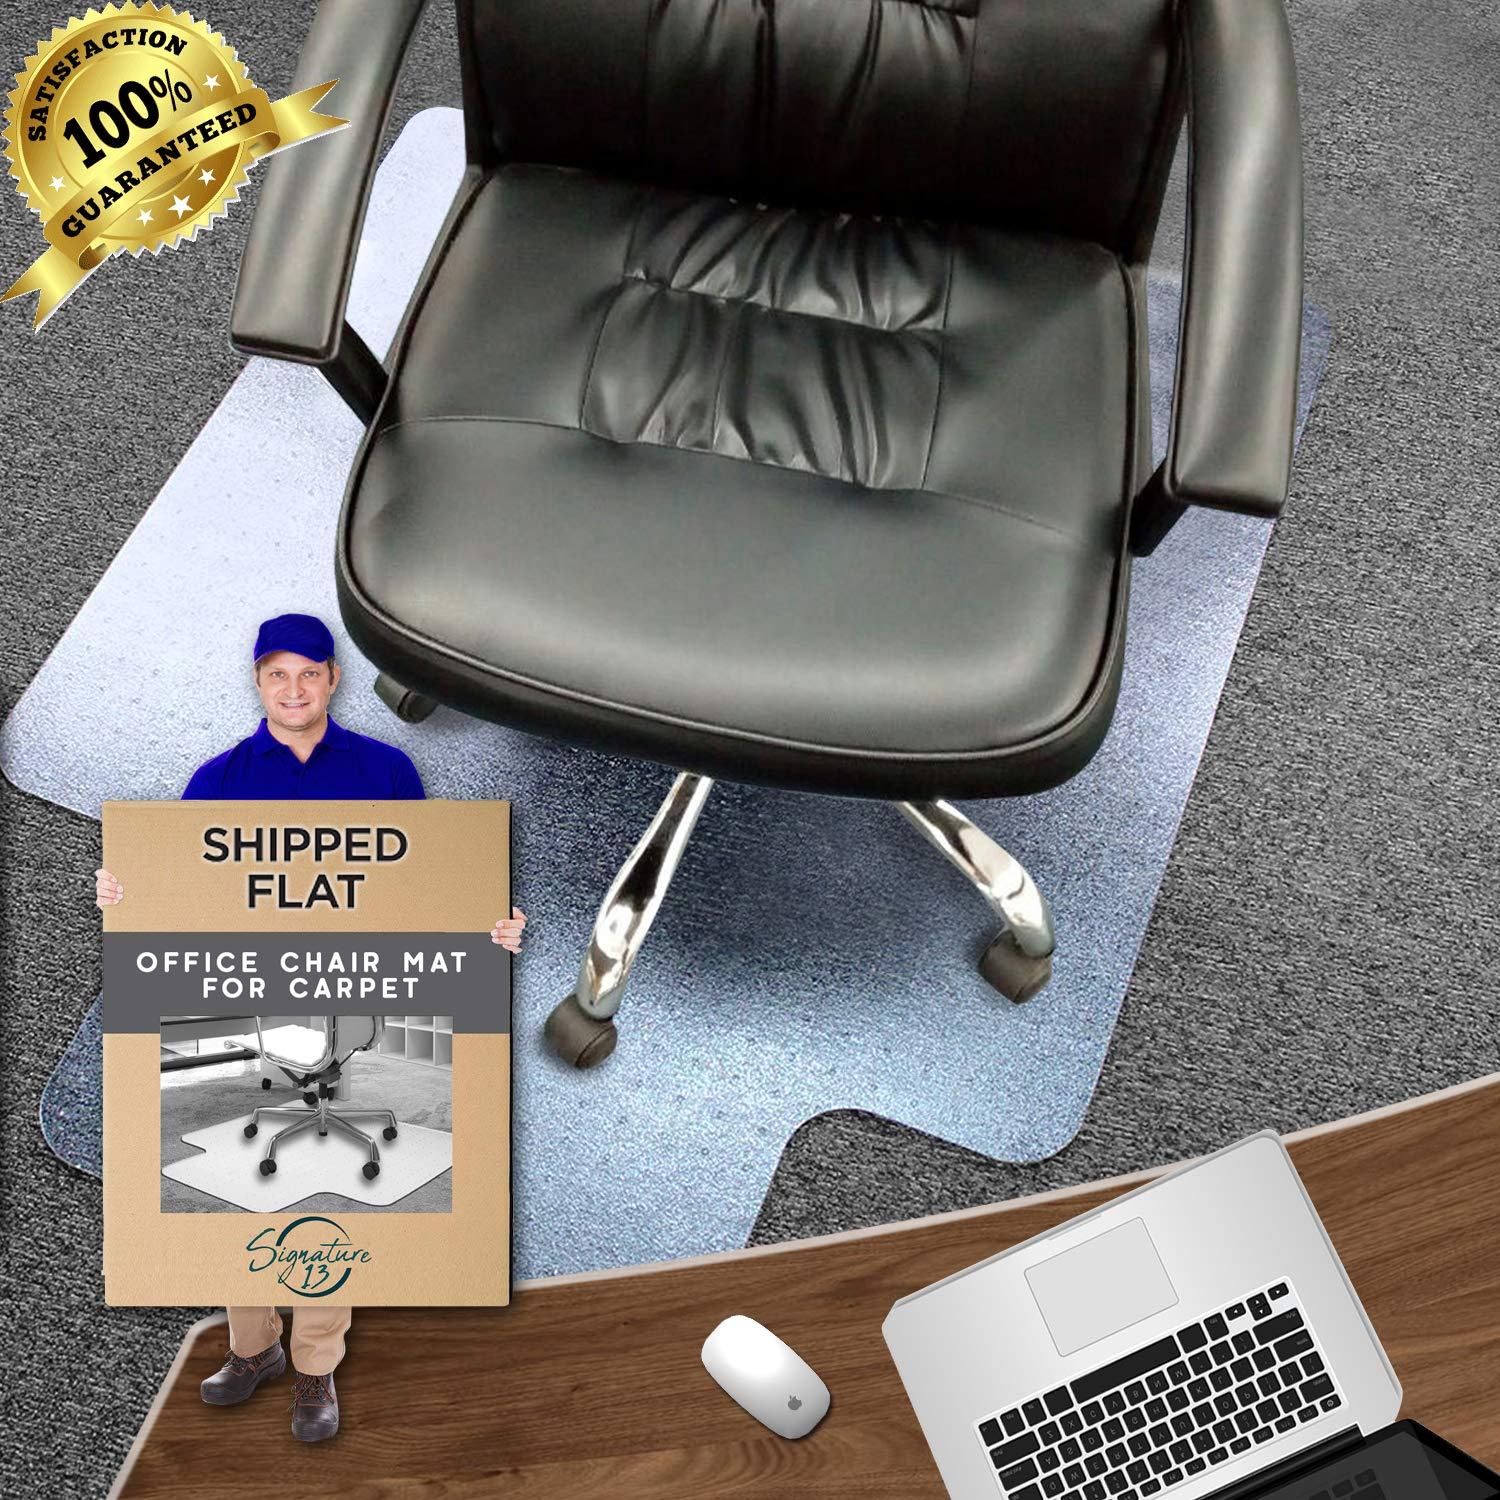 Office Chair Mat | Unbreakable Heavy Duty Polycarbonate Floor Mat for Office & Home | 3MM, 48x36 Inches with Lip | Low, Medium and Semi-High Pile Carpets